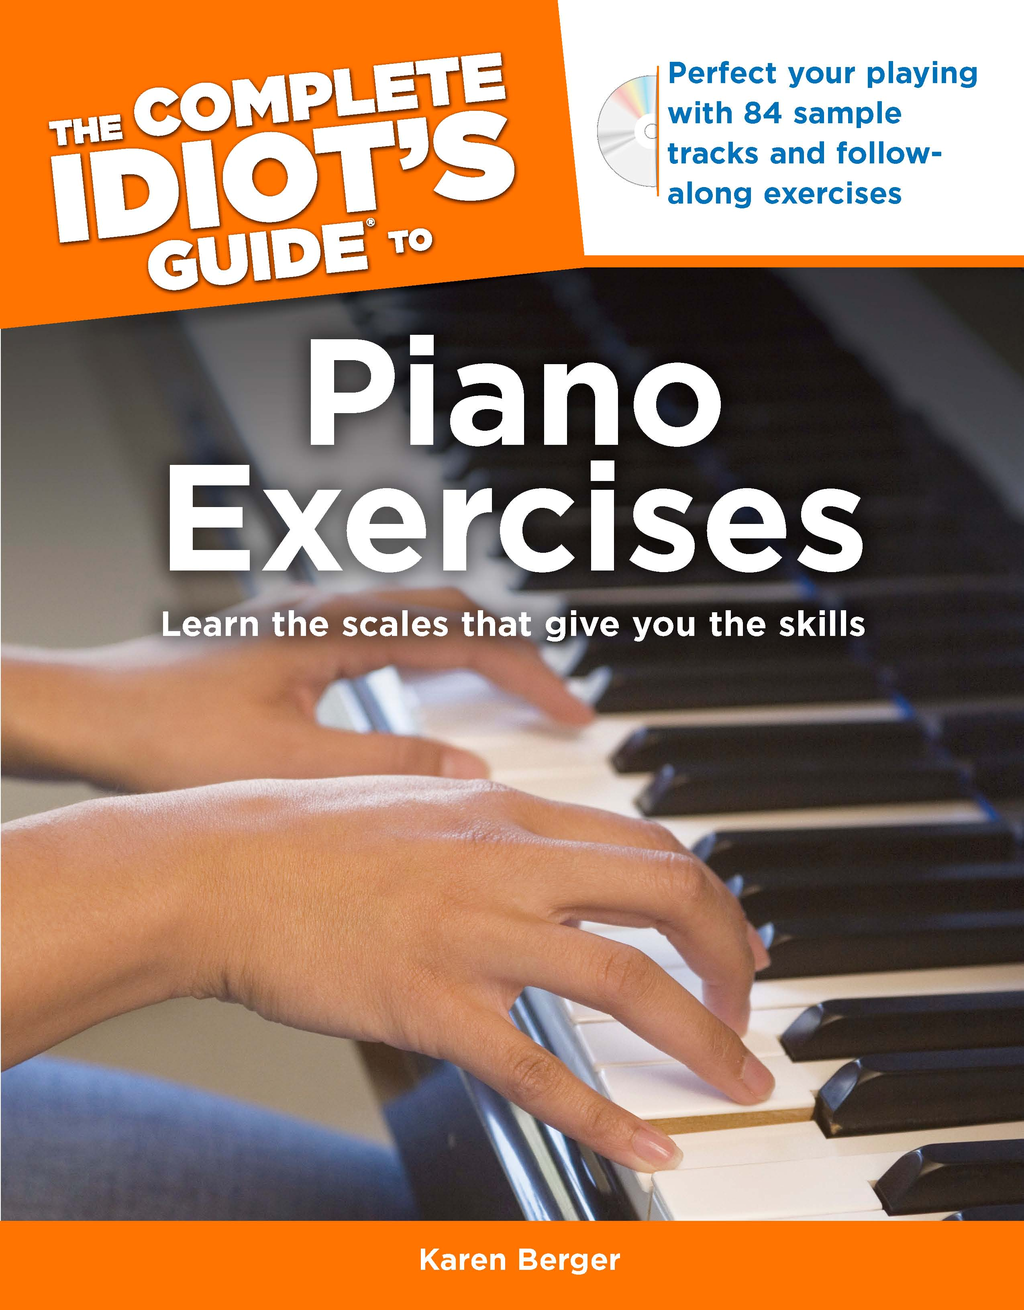 The Complete Idiot's Guide to Piano Exercises By: Karen Berger